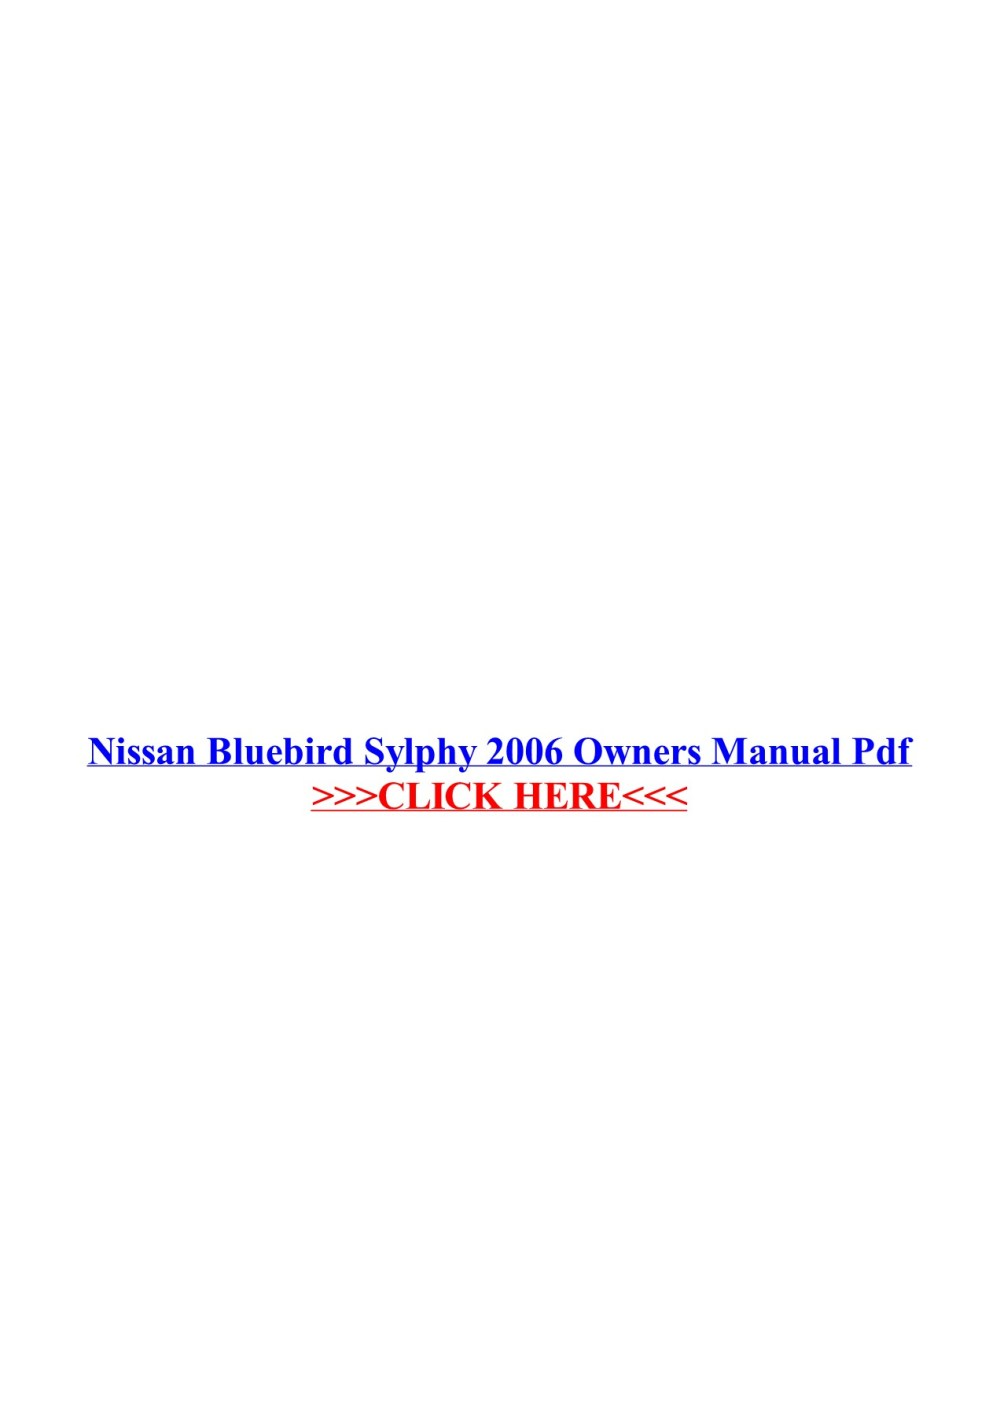 medium resolution of nissan bluebird sylphy 2006 owners manual pdf some call it an owner s manual an handbook a user handbook an operator s guide or nissan bluebird sylphy